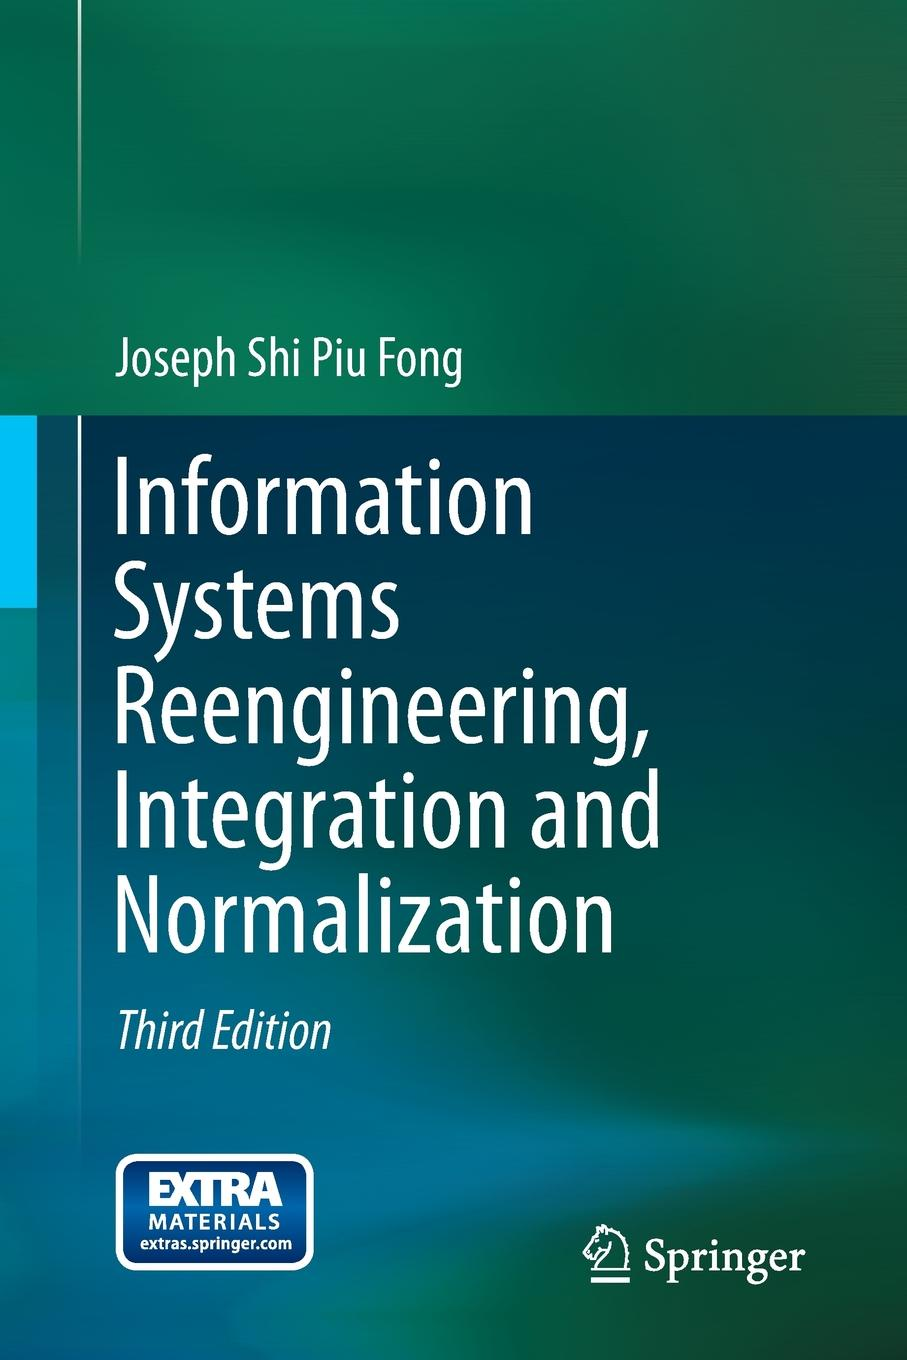 лучшая цена Joseph Fong Information Systems Reengineering, Integration and Normalization